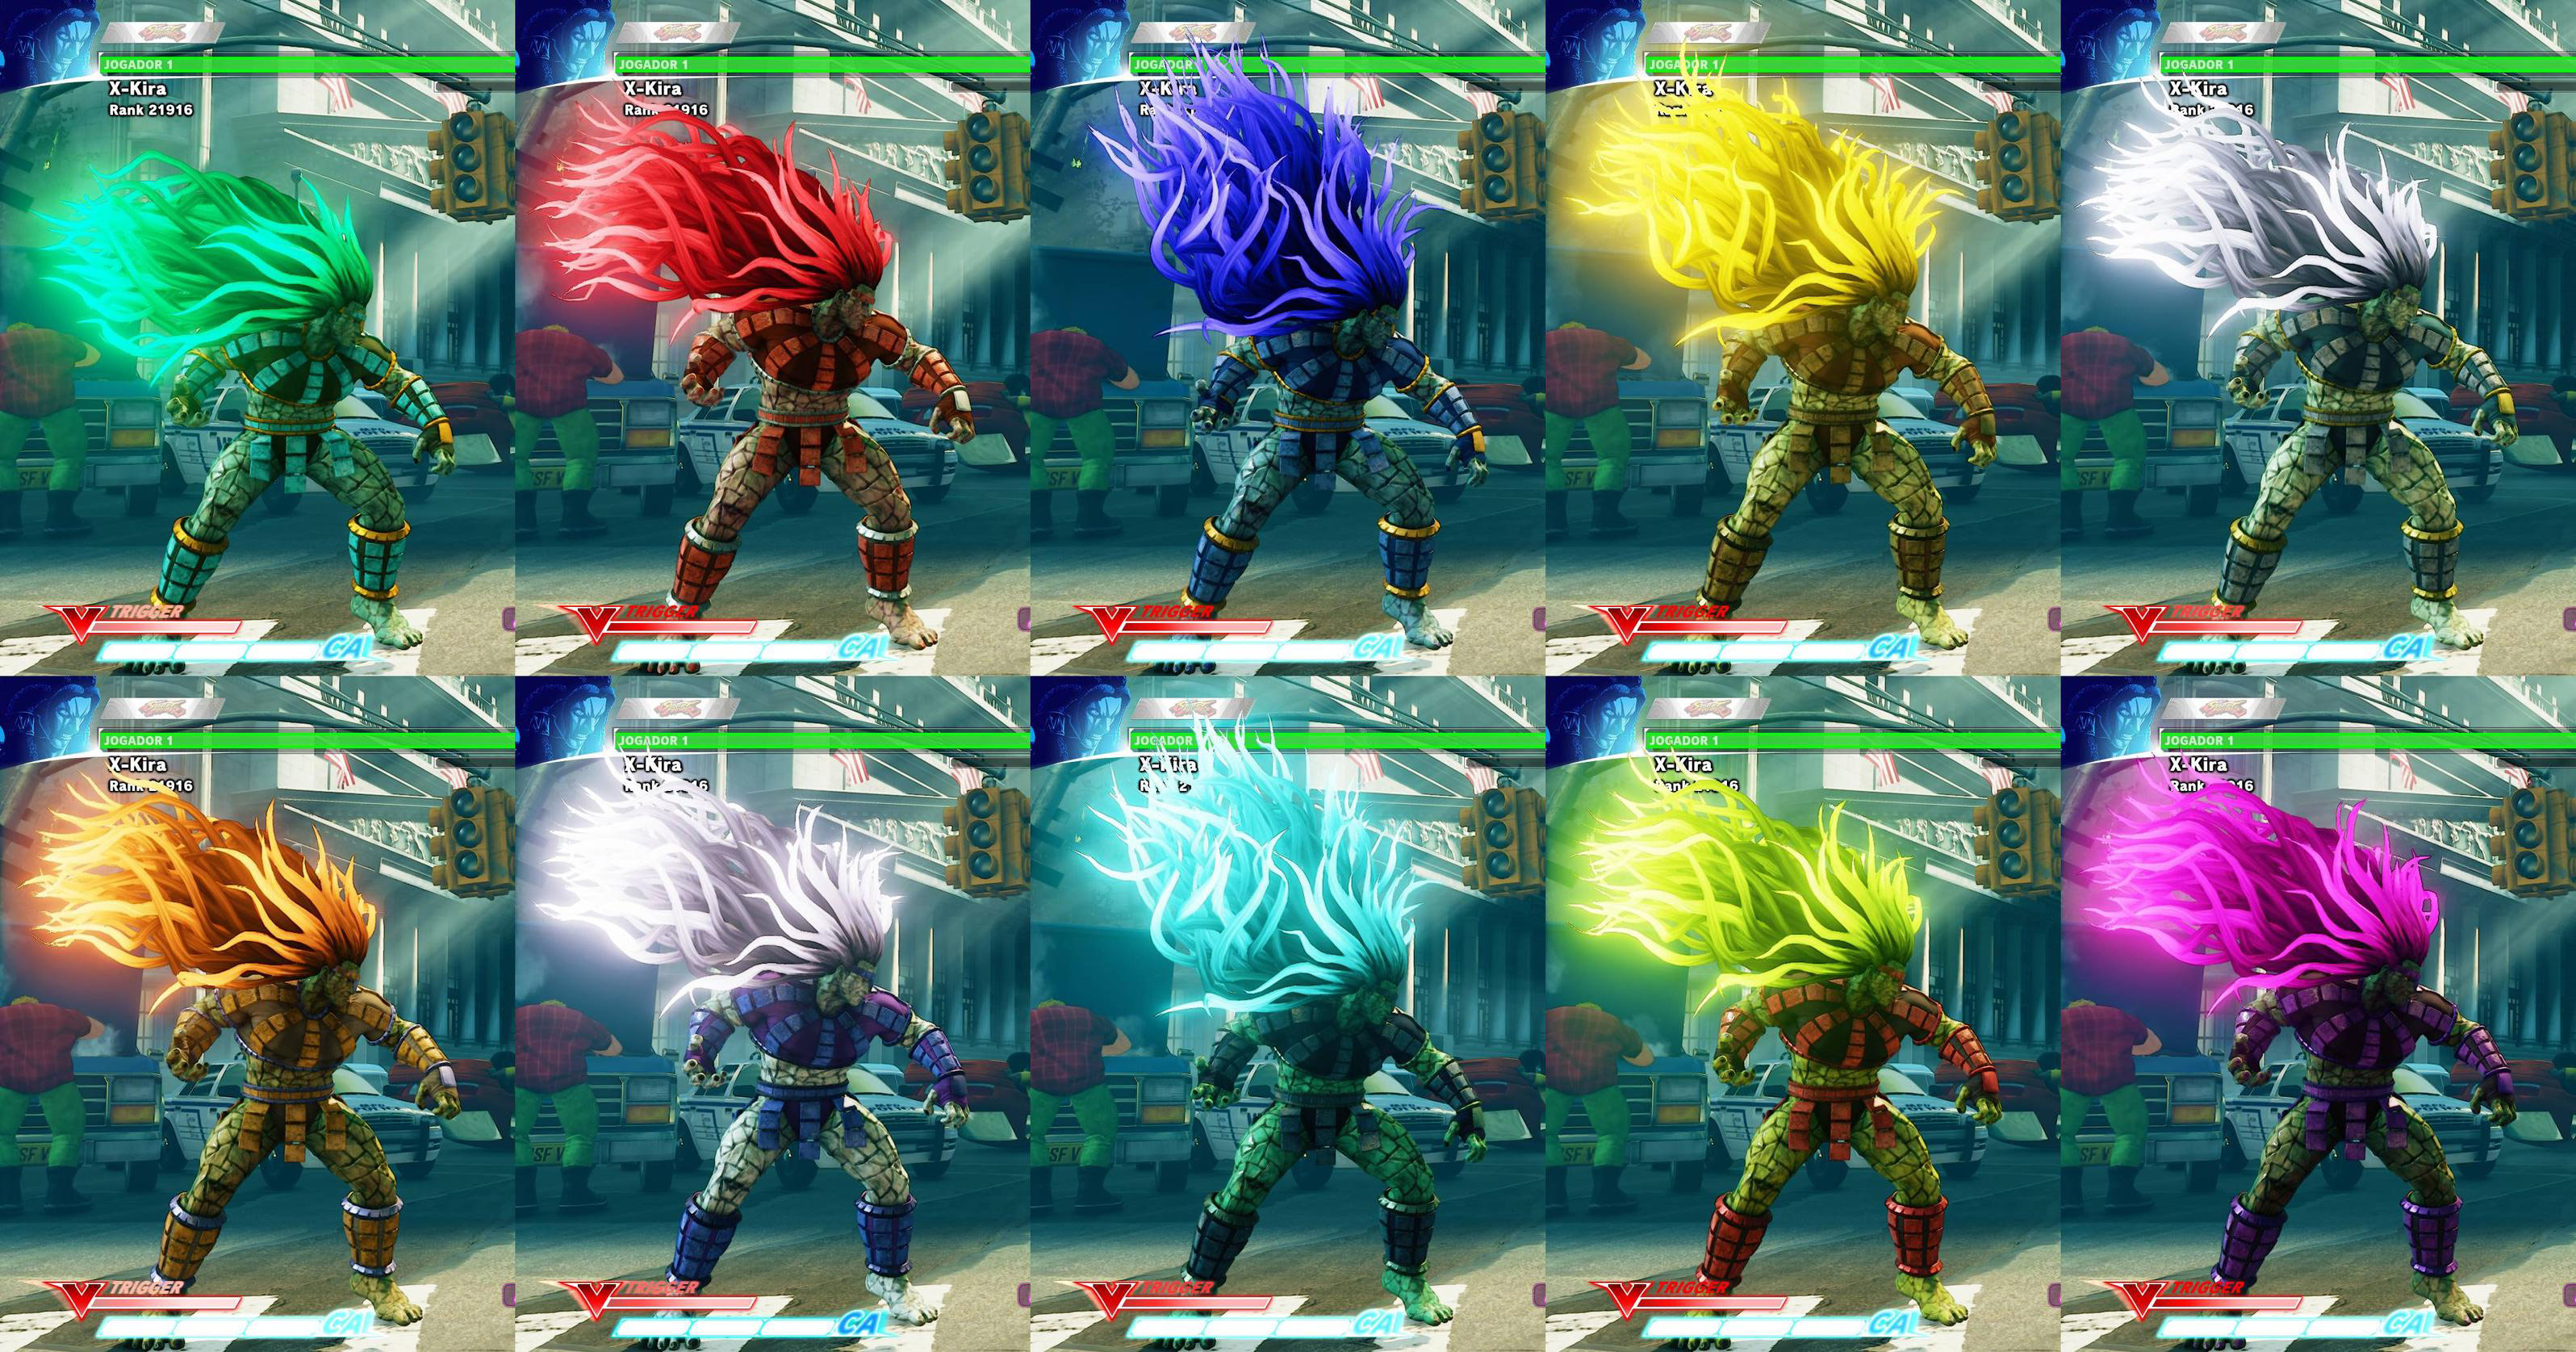 Game order colors - All Colors For Sf5 Story And Pre Order Costumes 4 Out Of 21 Image Gallery